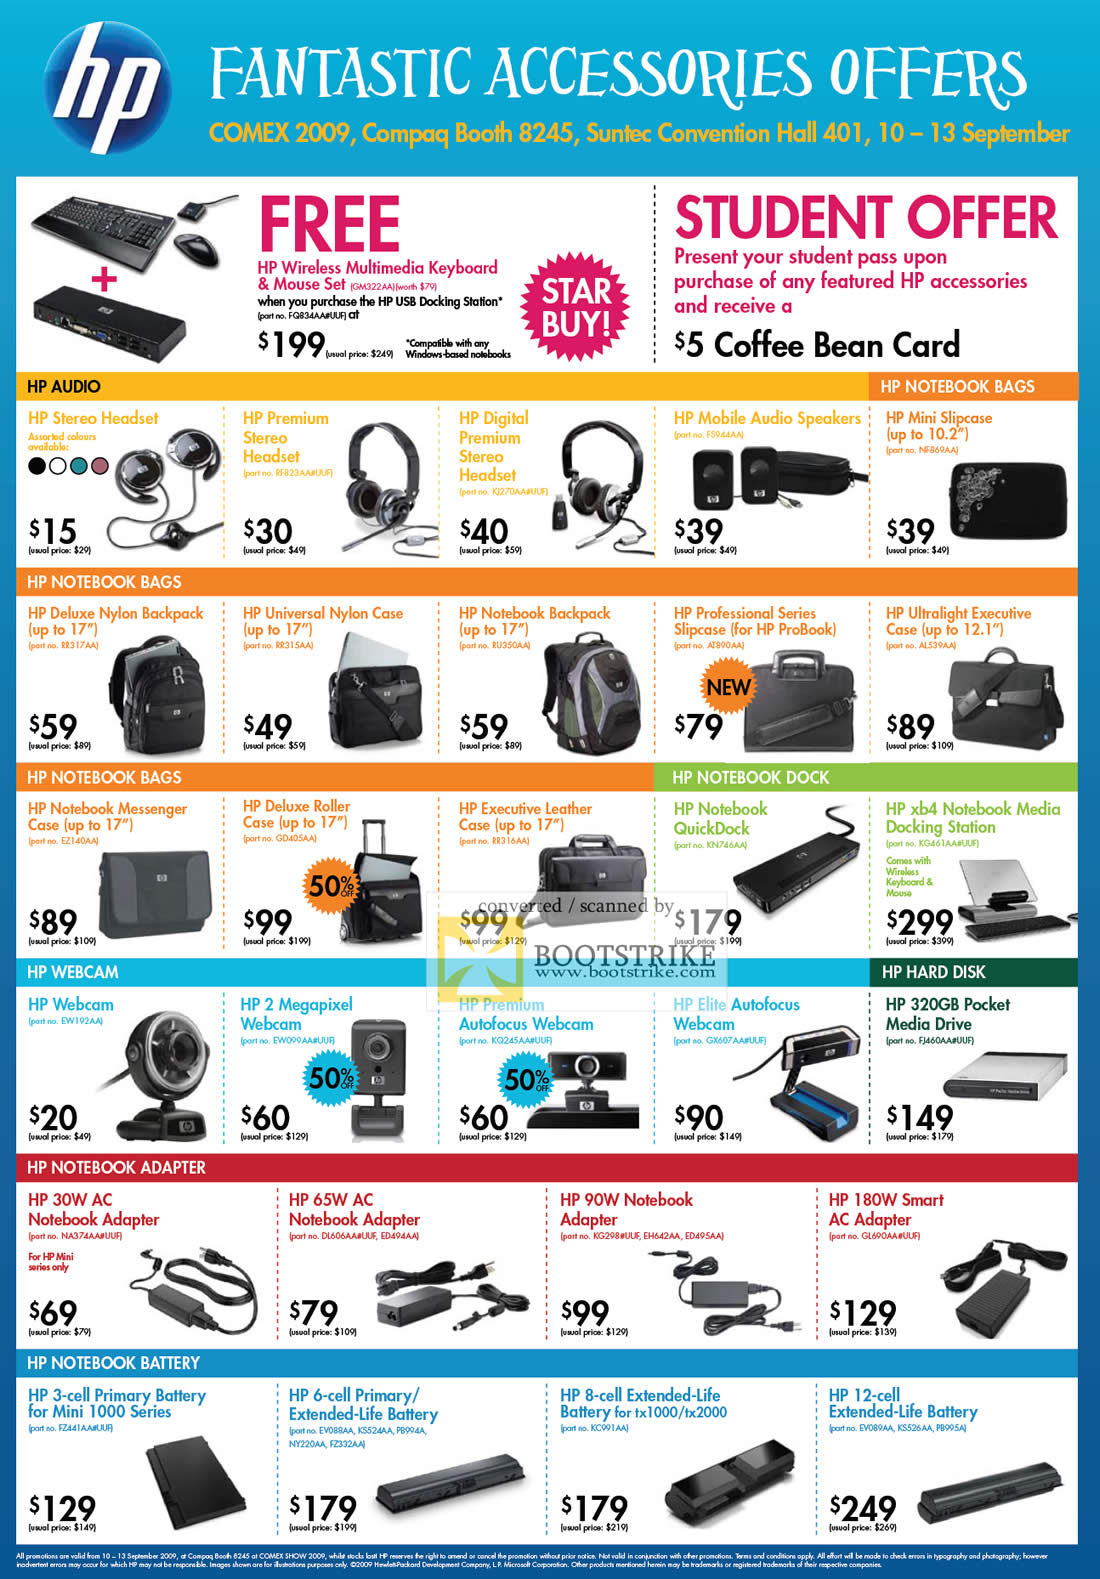 Comex 2009 price list image brochure of HP Accessories Audio Headset Speakers Bag Webcam Notebook Adapter Battery